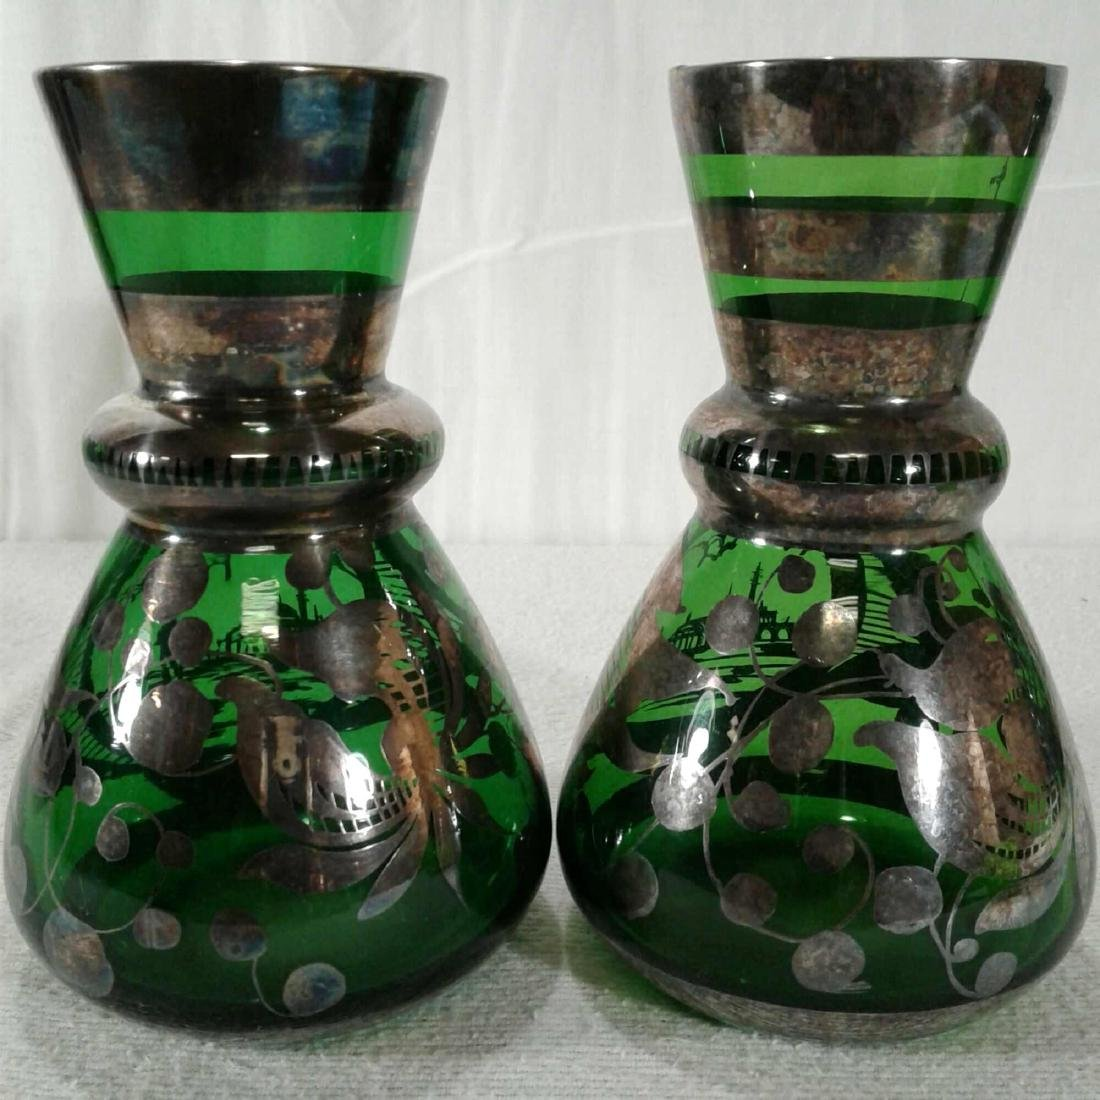 Vintage Green Vases with Overlay Flower Designs